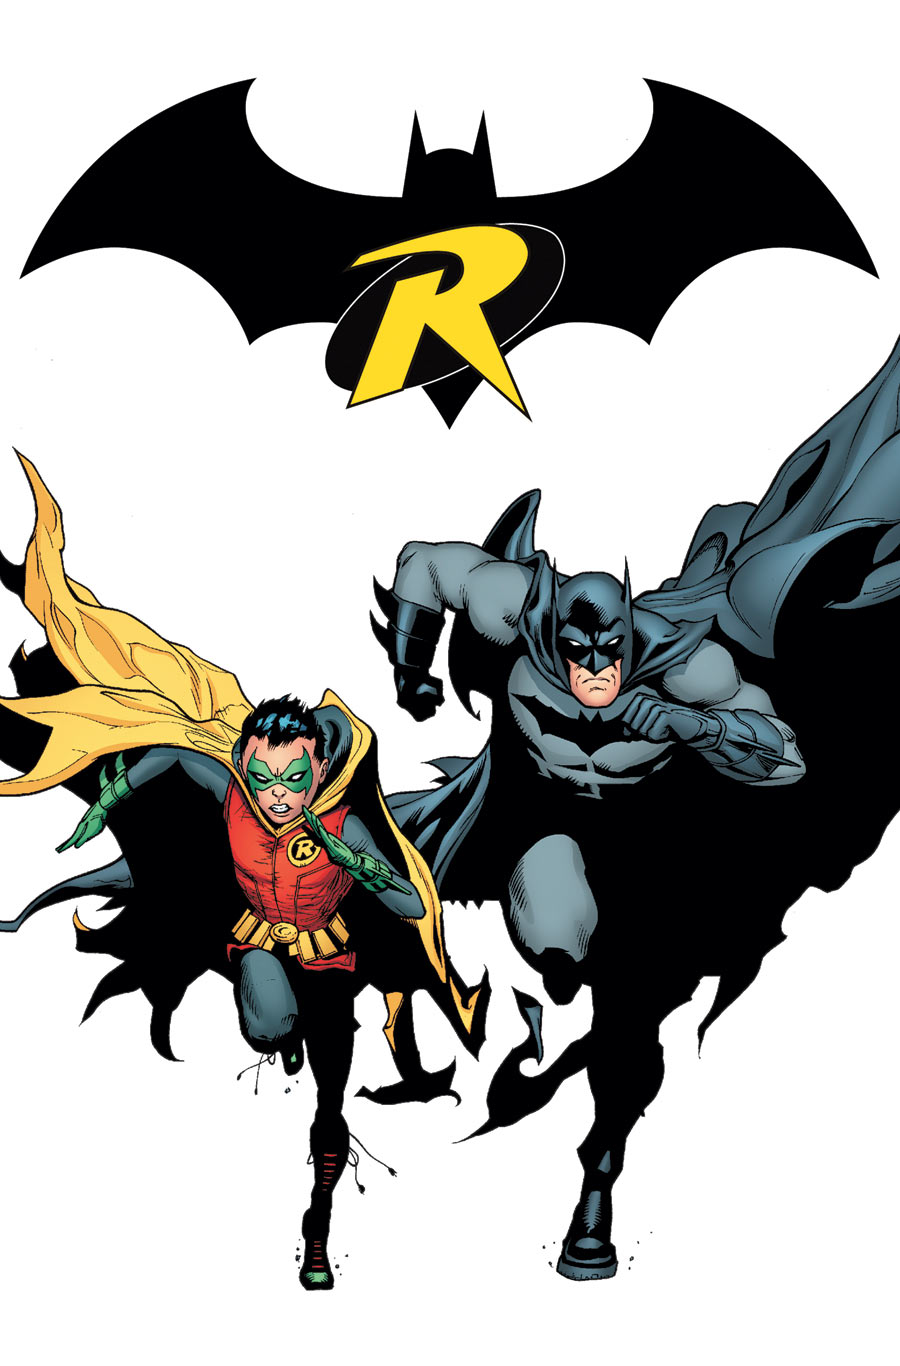 Cover for Batman and Robin 19 with Batman and Robin running towards the reader